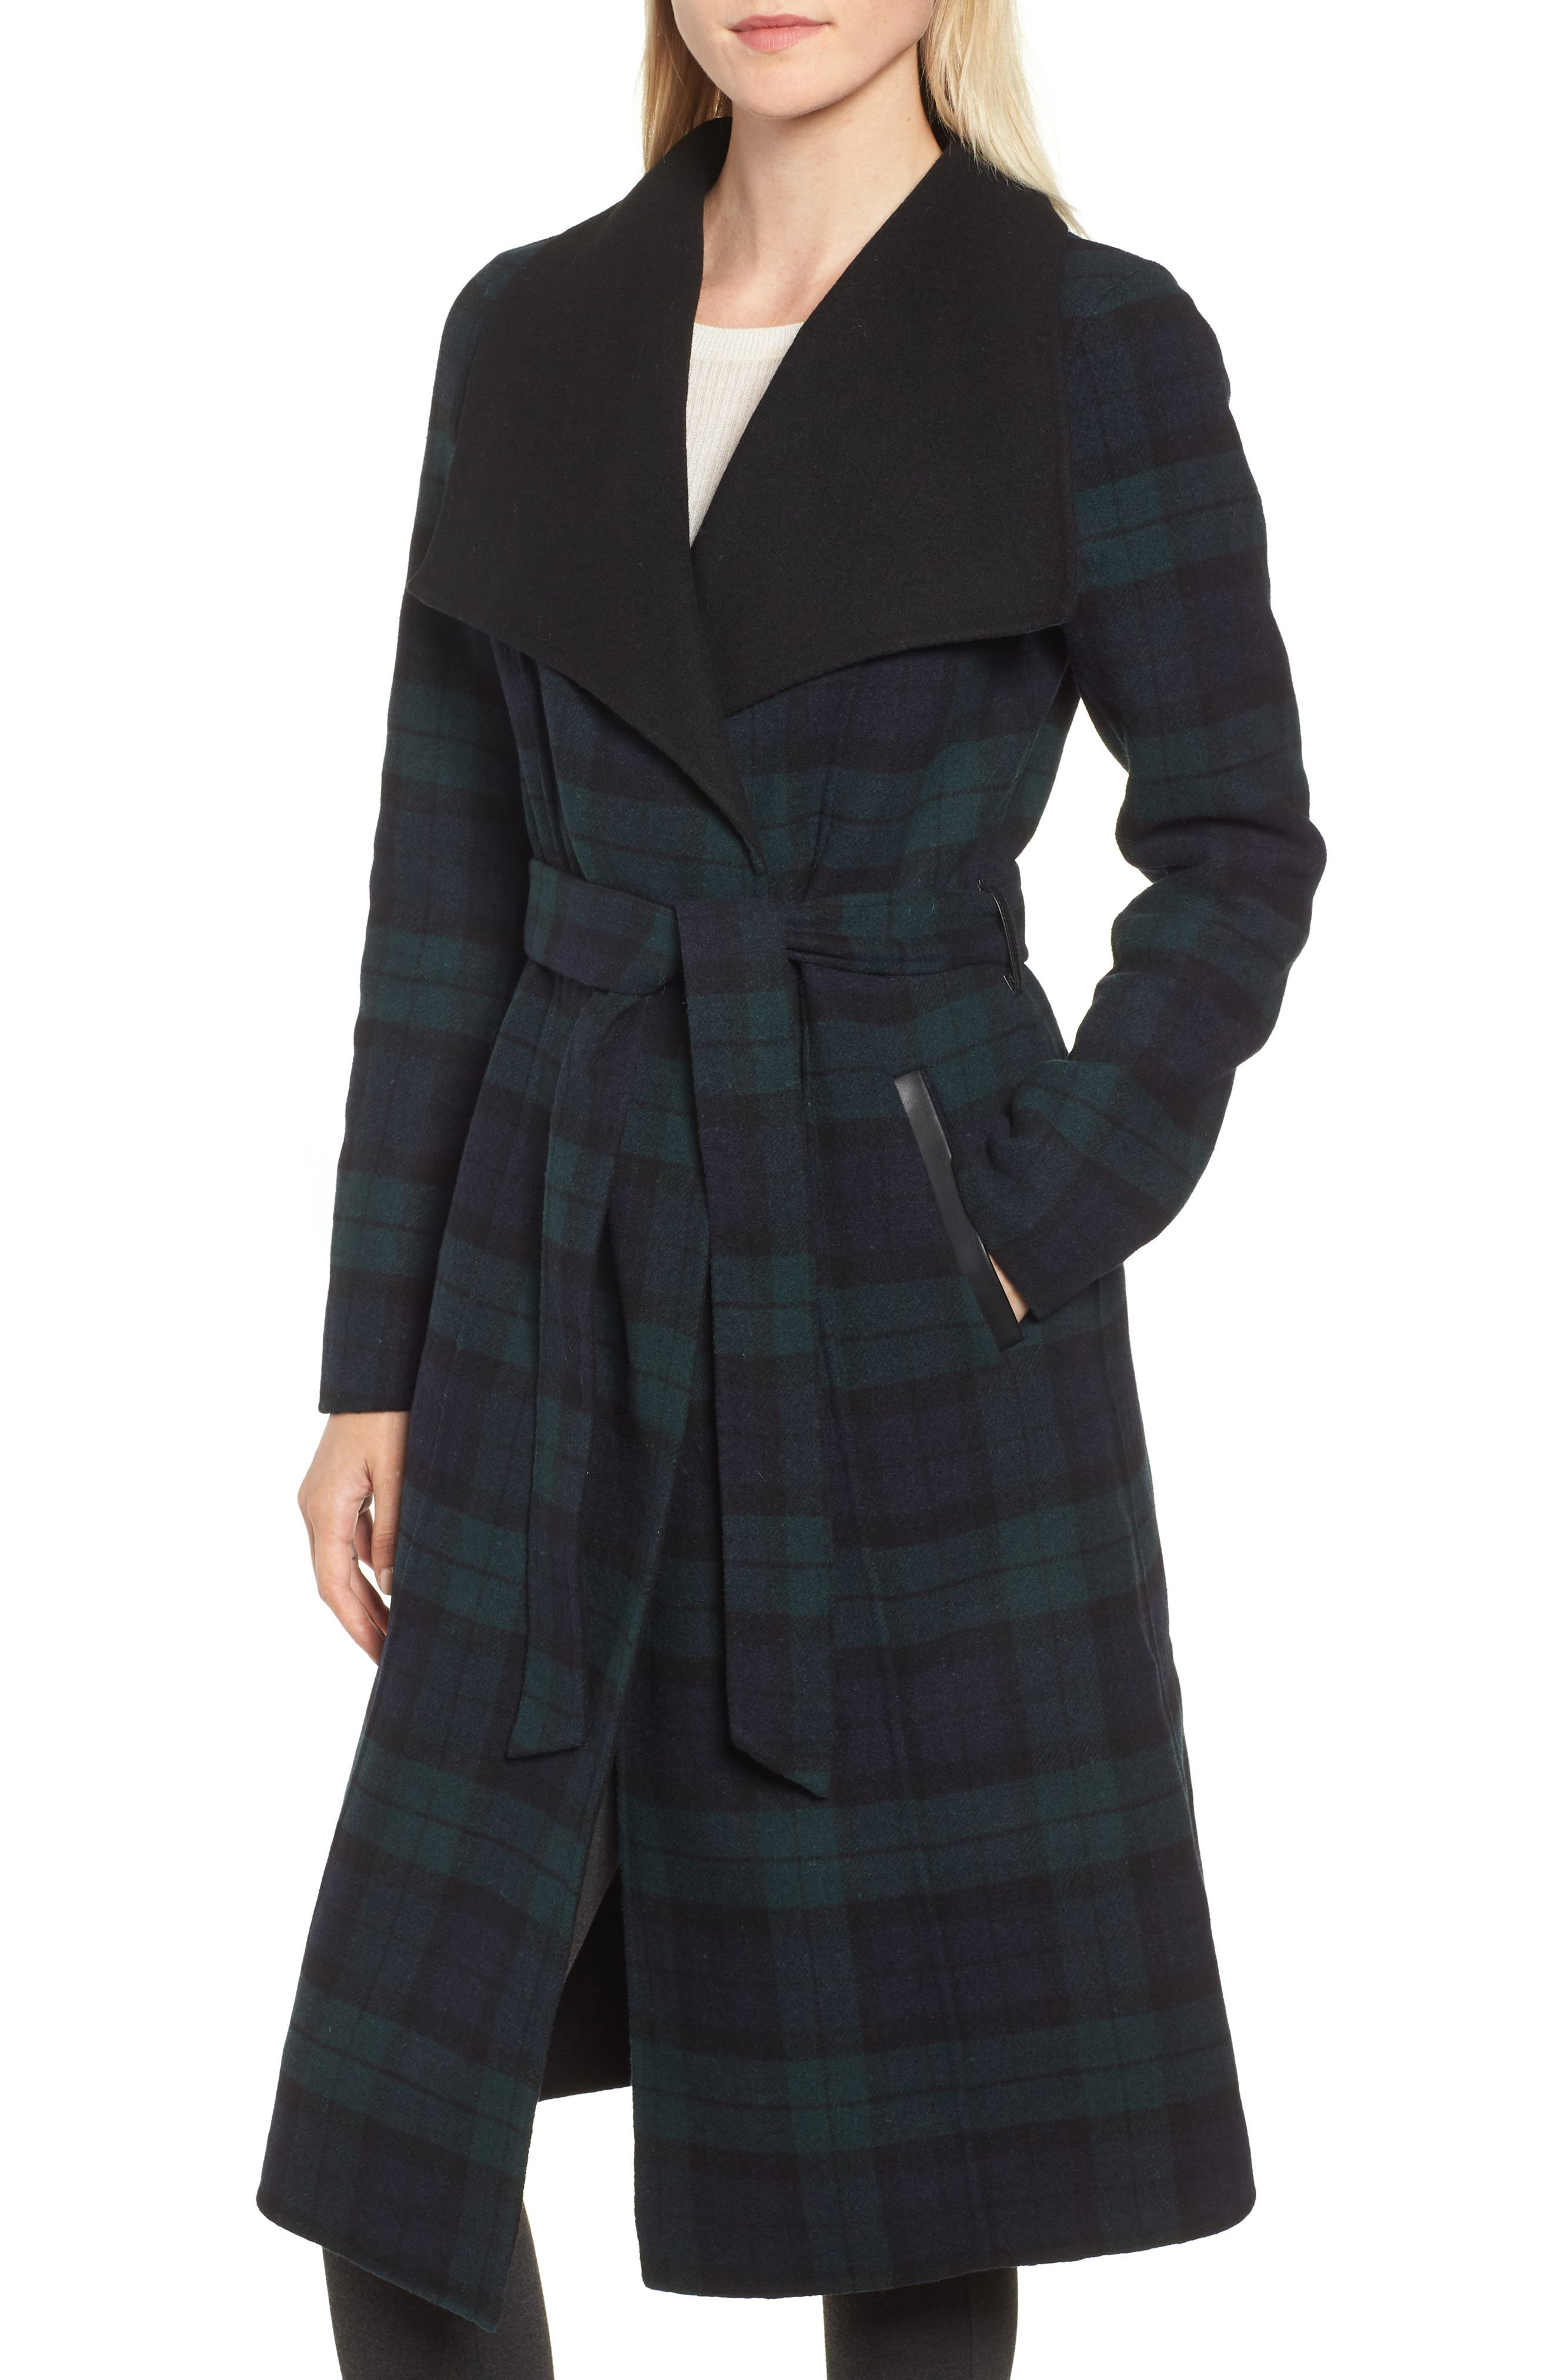 MACKAGE,                             Double Face Wool Leather Belted Coat,                             Alternate thumbnail 4, color,                             411